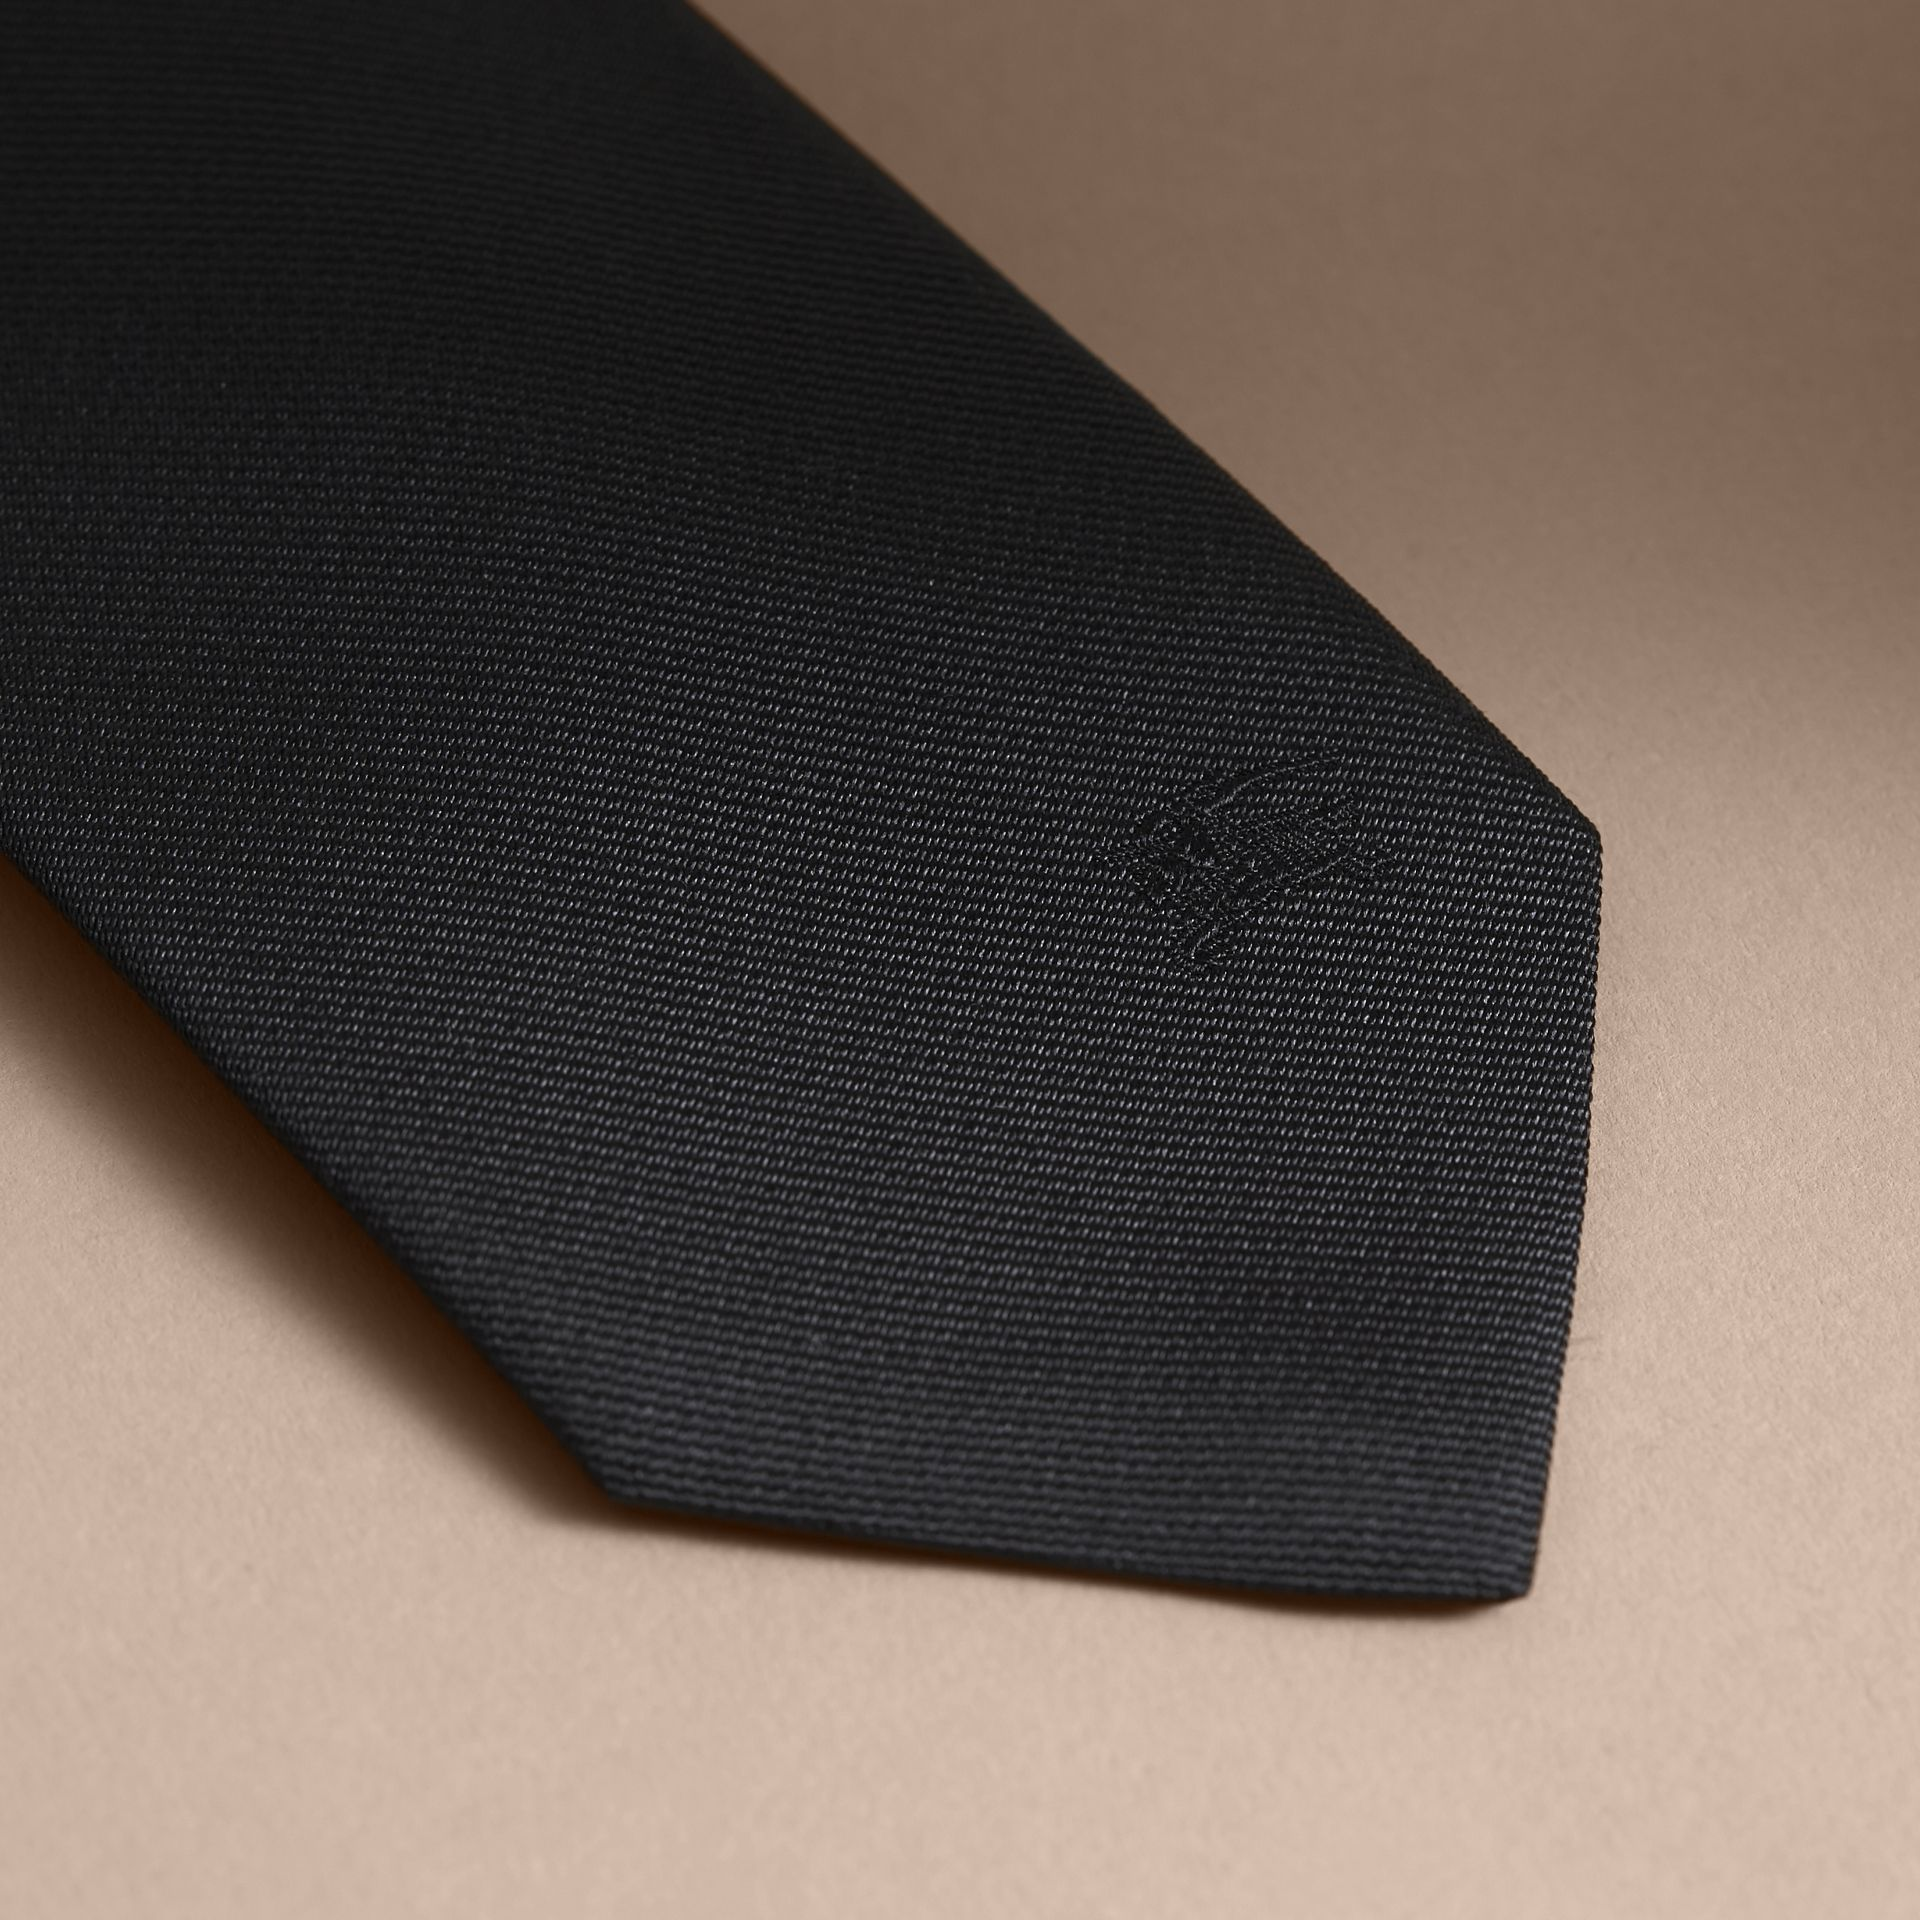 Slim Cut Silk Twill Tie in Black - Men | Burberry - gallery image 2